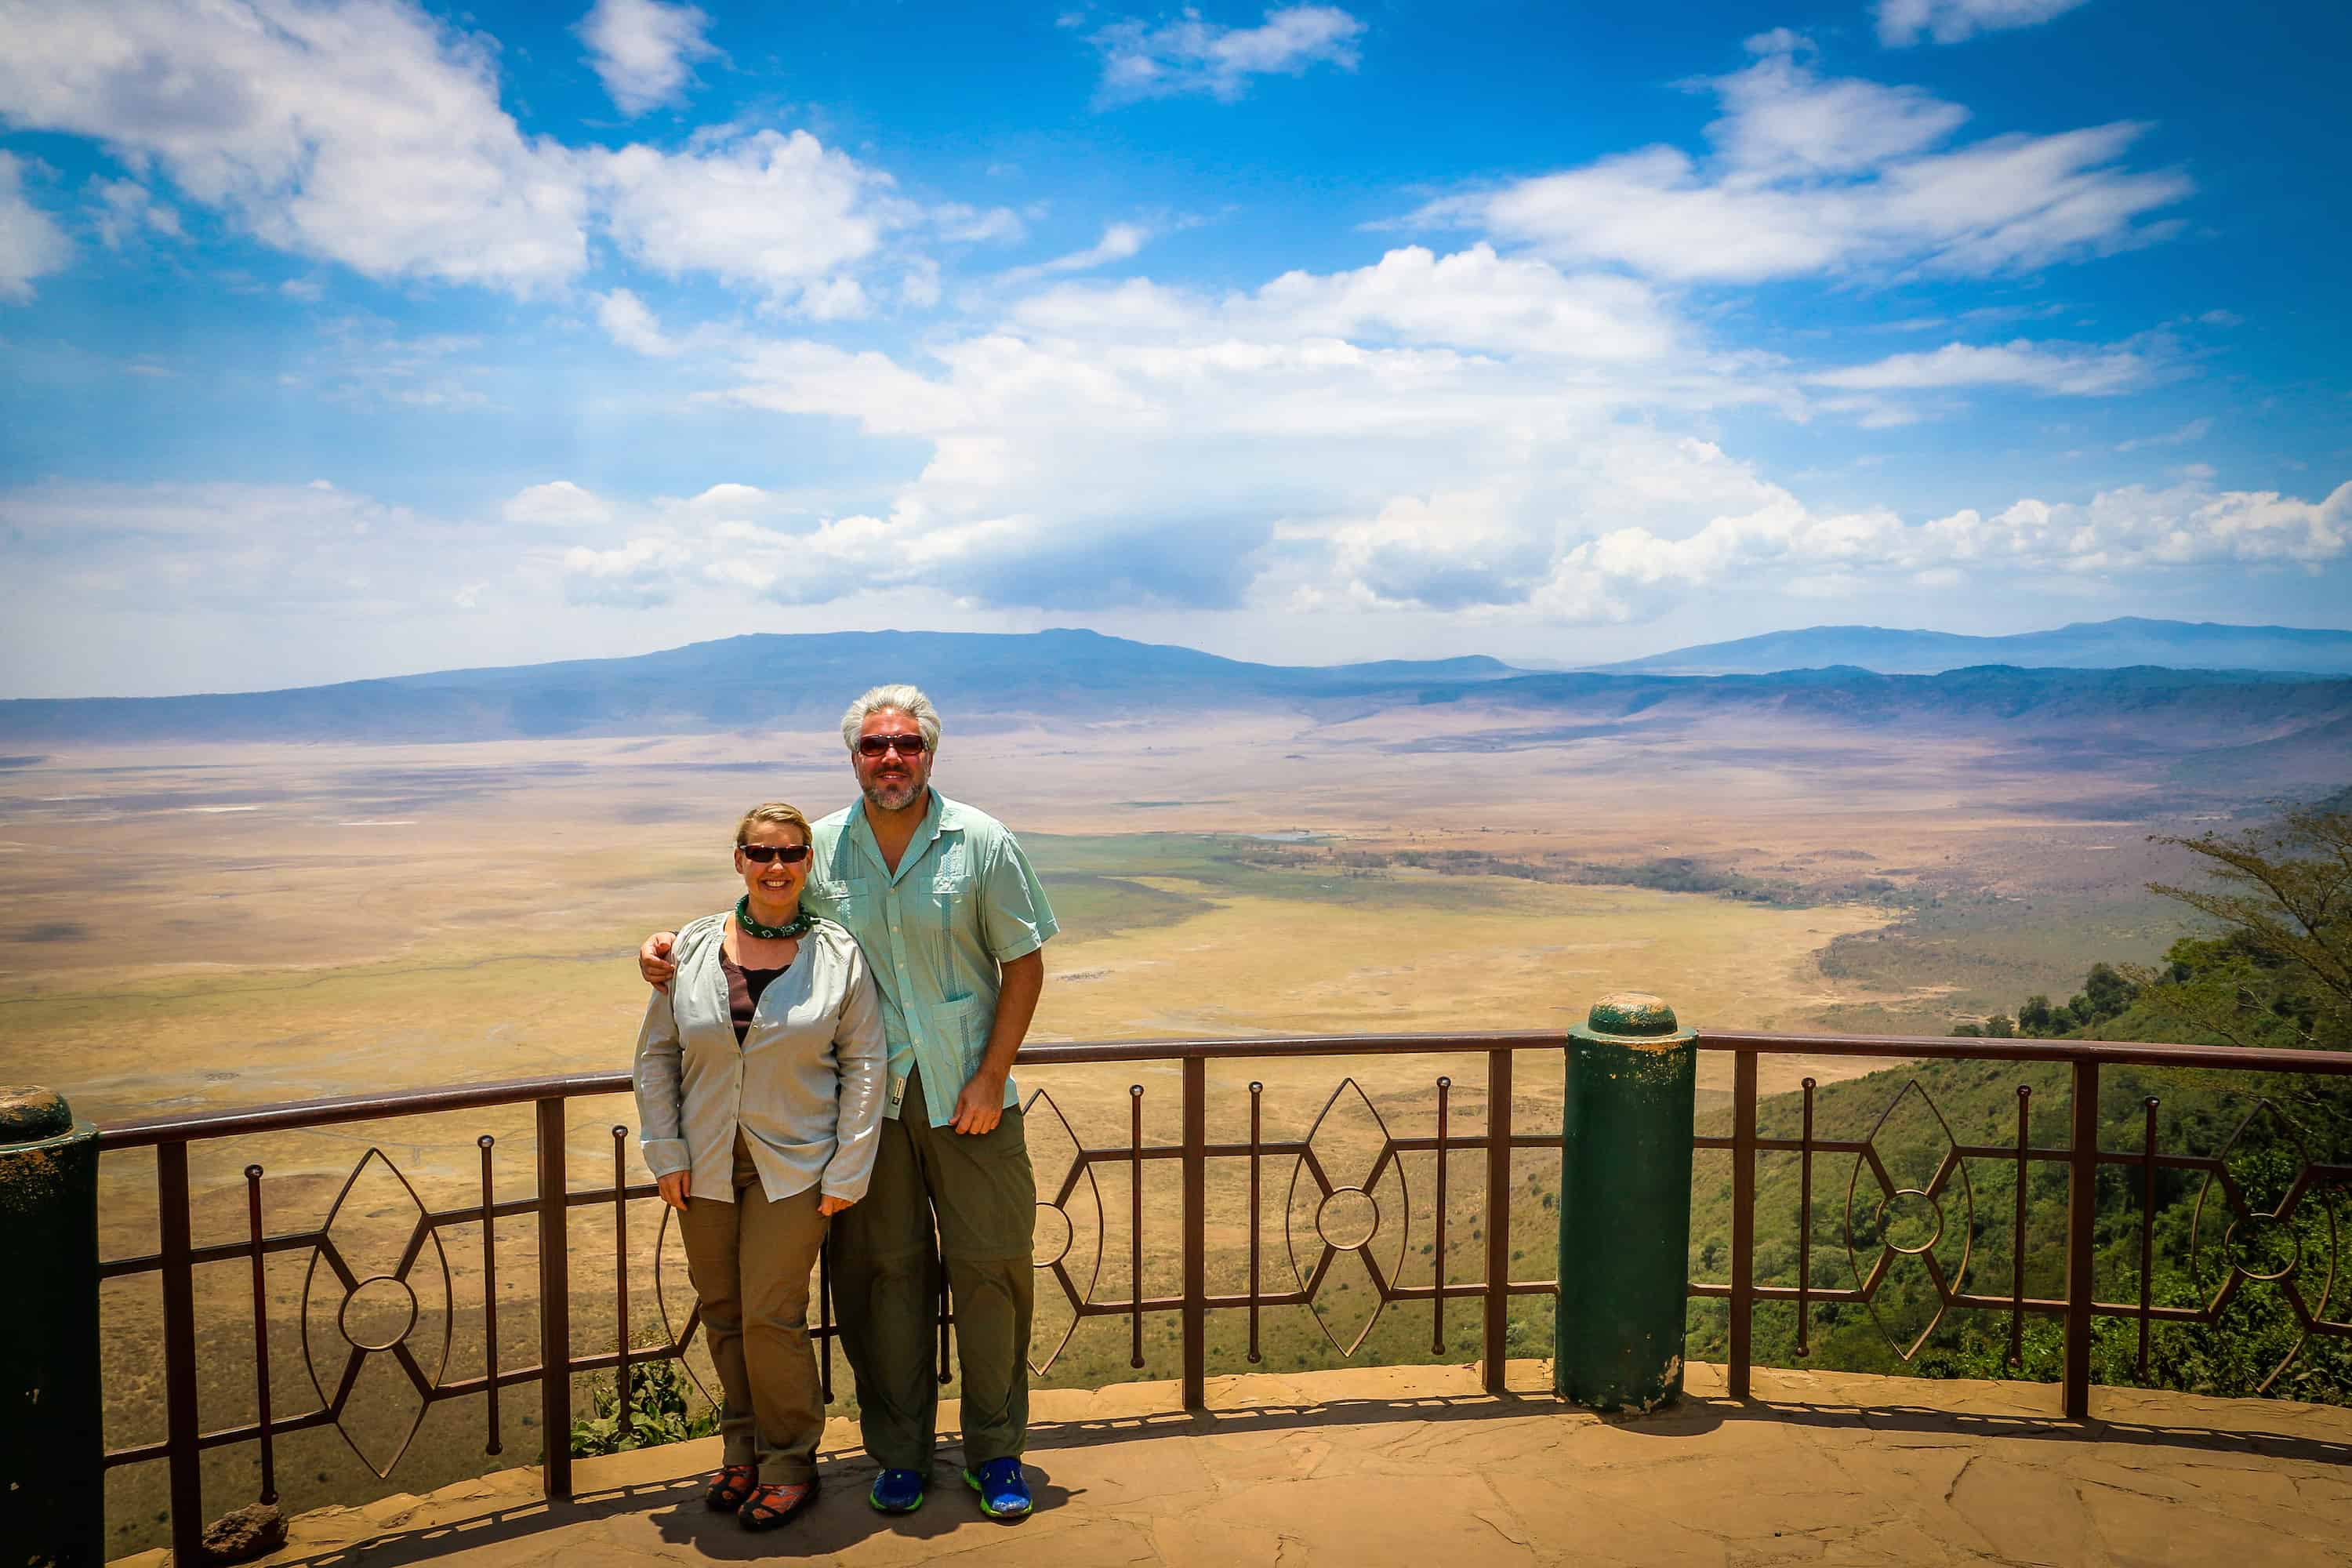 Bret Love and Mary Gabbett in Tanzania's Ngorongoro Conservation Area